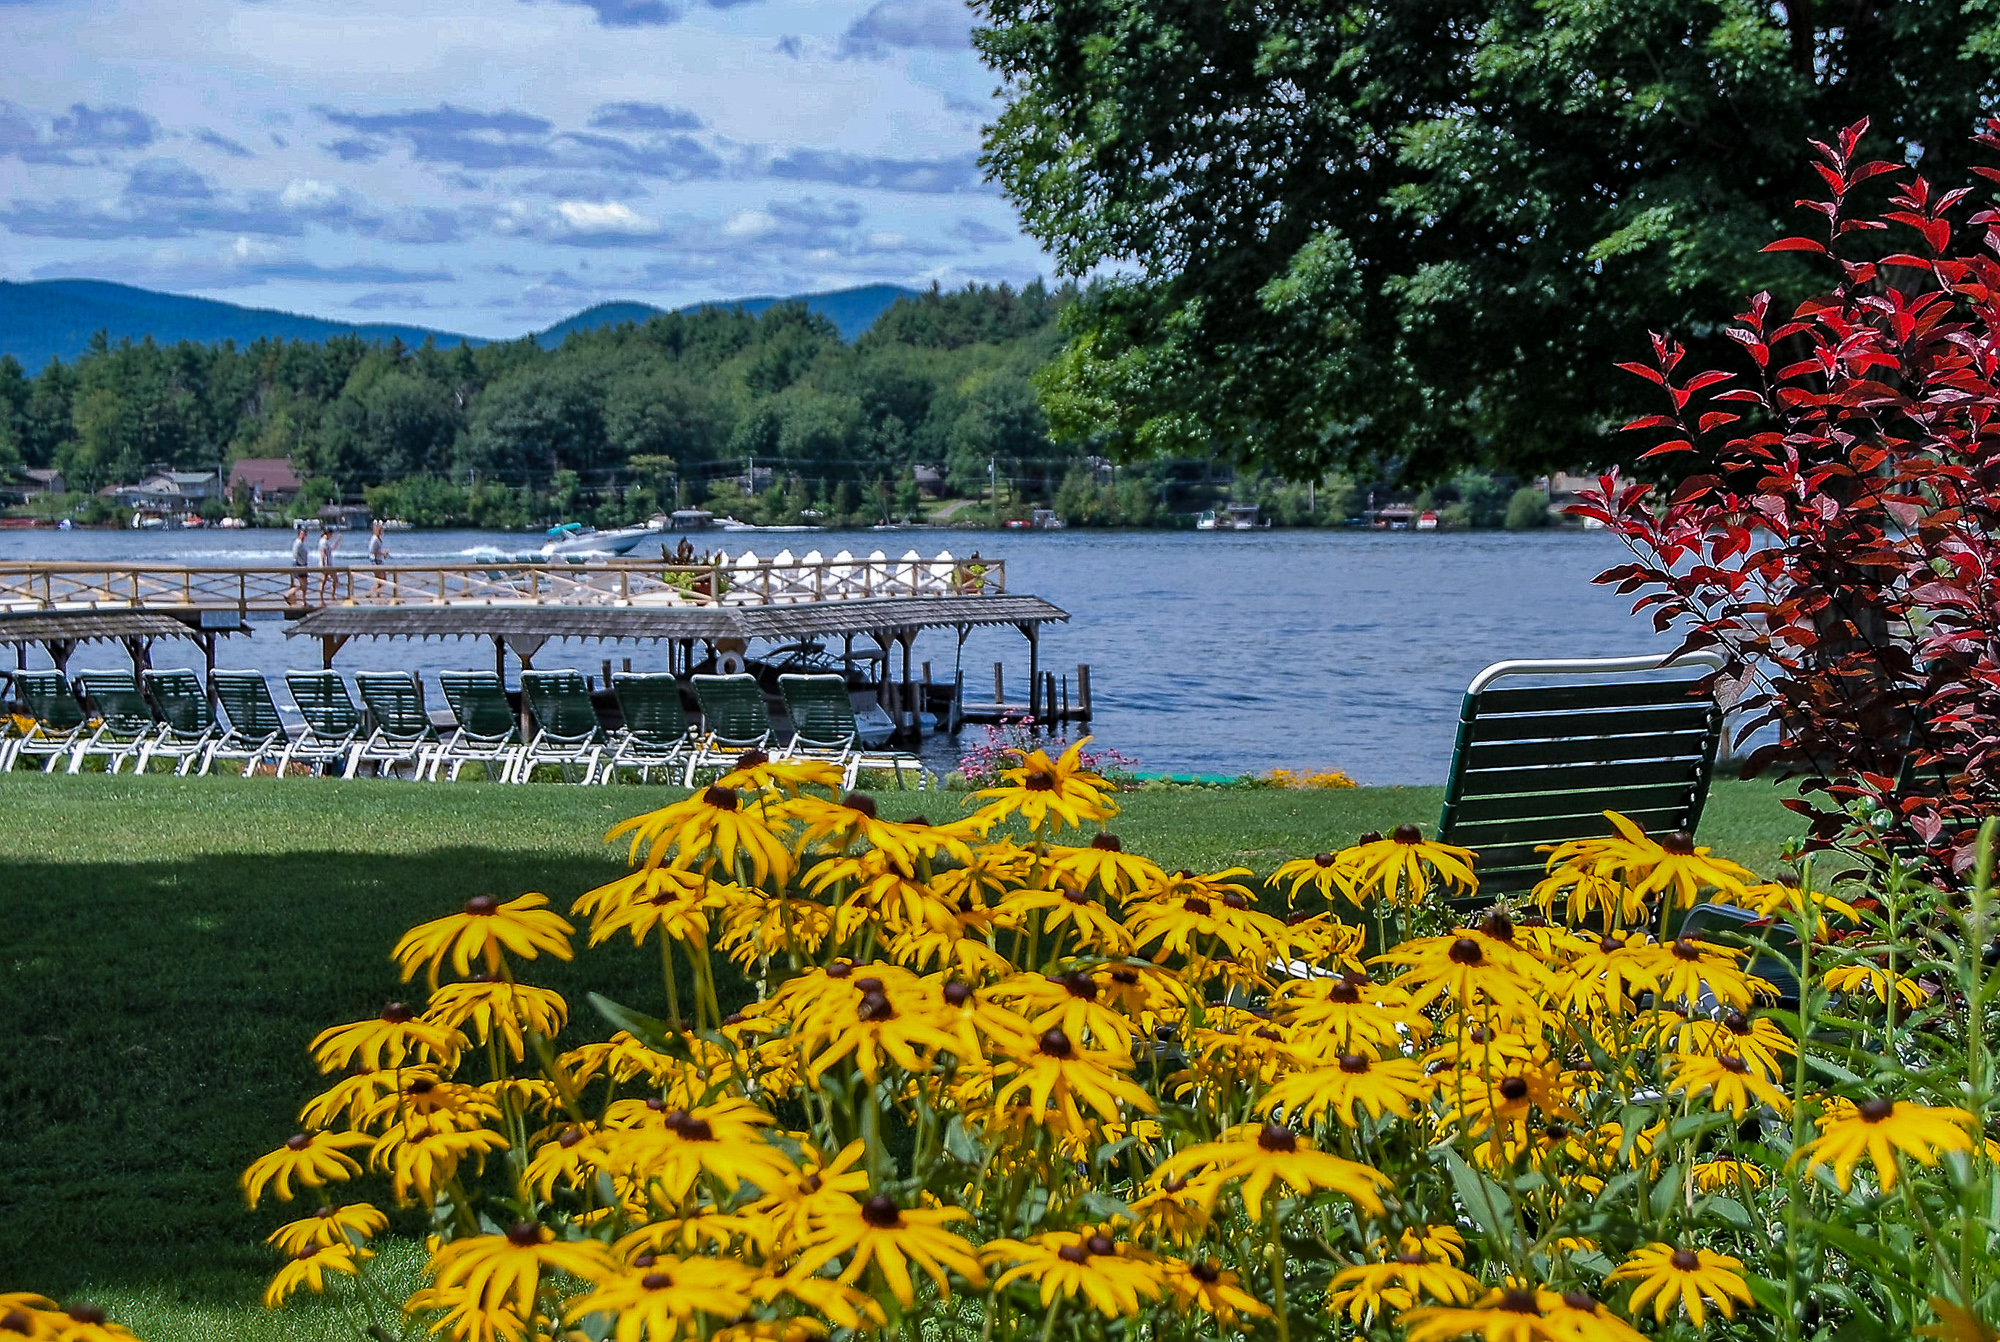 Lake George vacation cabin rentals at Takundewide Cottages on Lake George view of lake from property